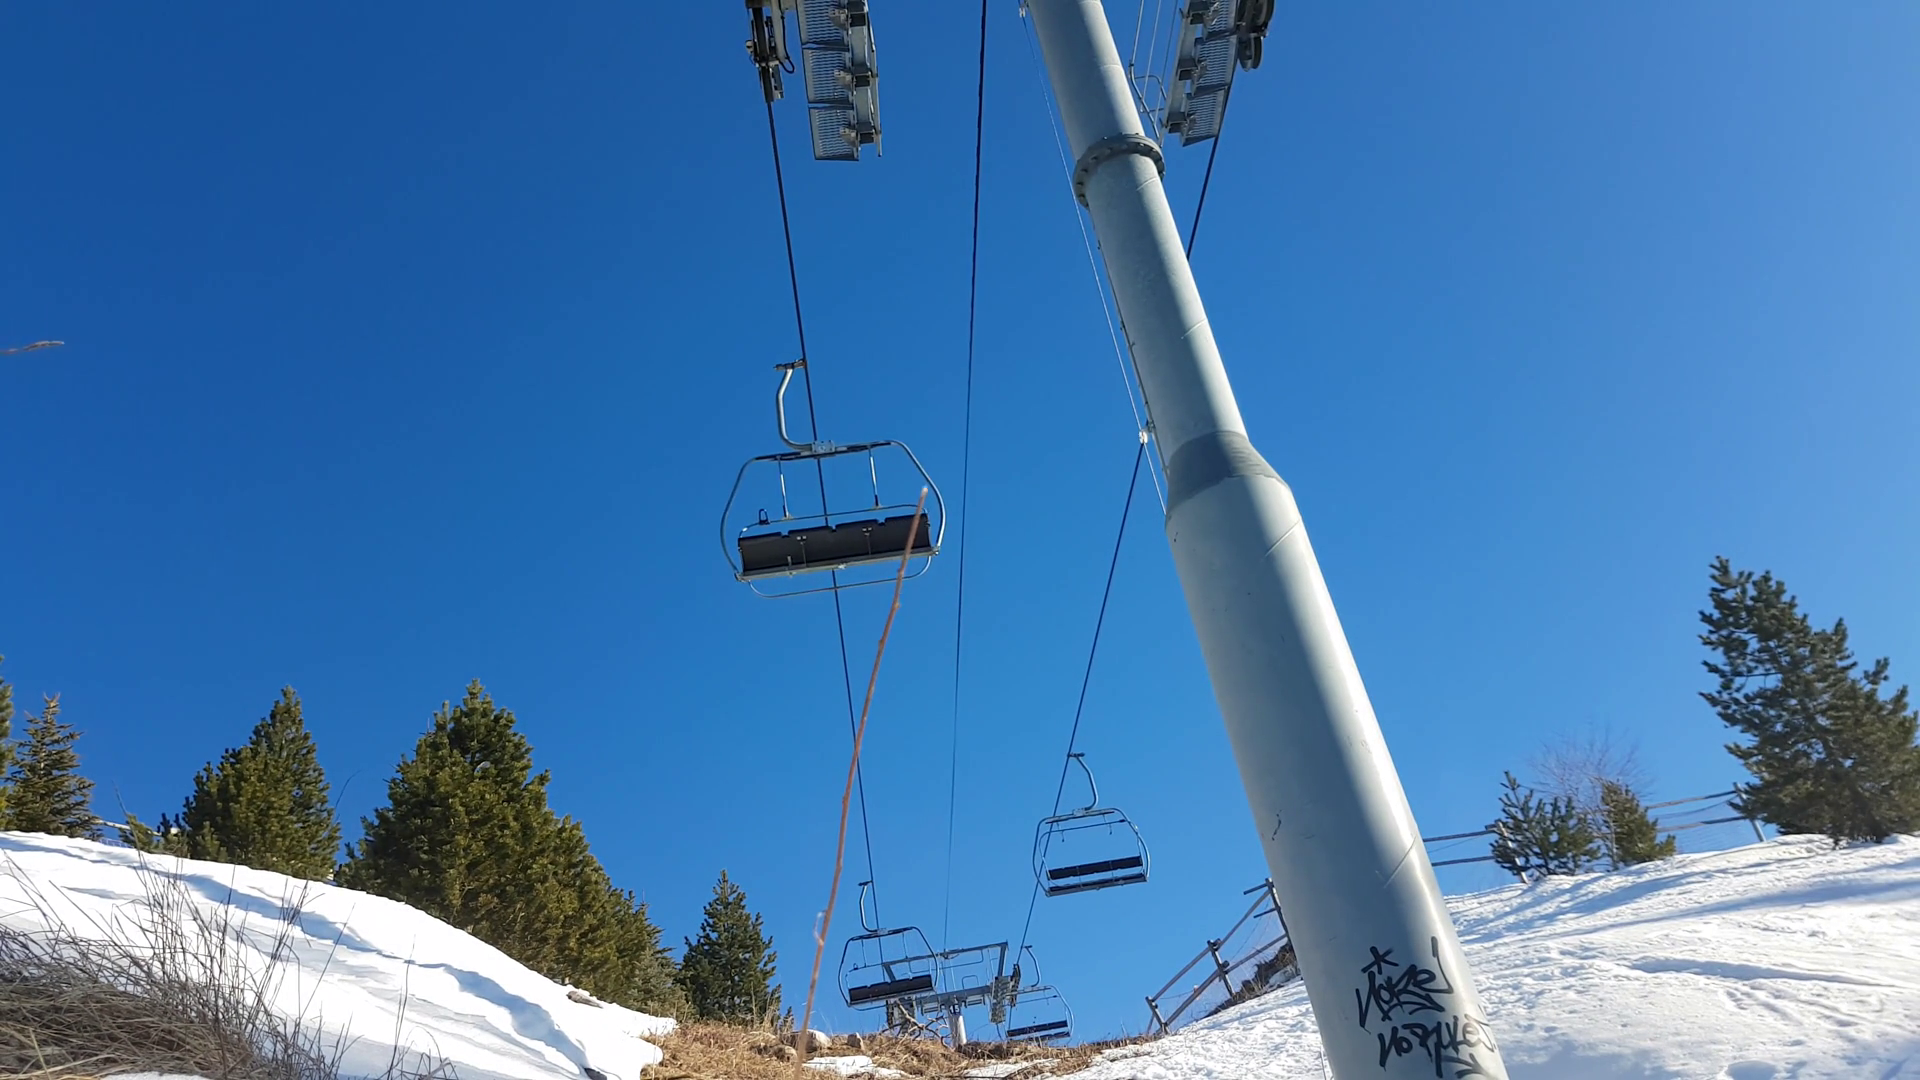 Empty Ski Lift Or Chairlift in Motion Over Snow Mountain - Ski ...